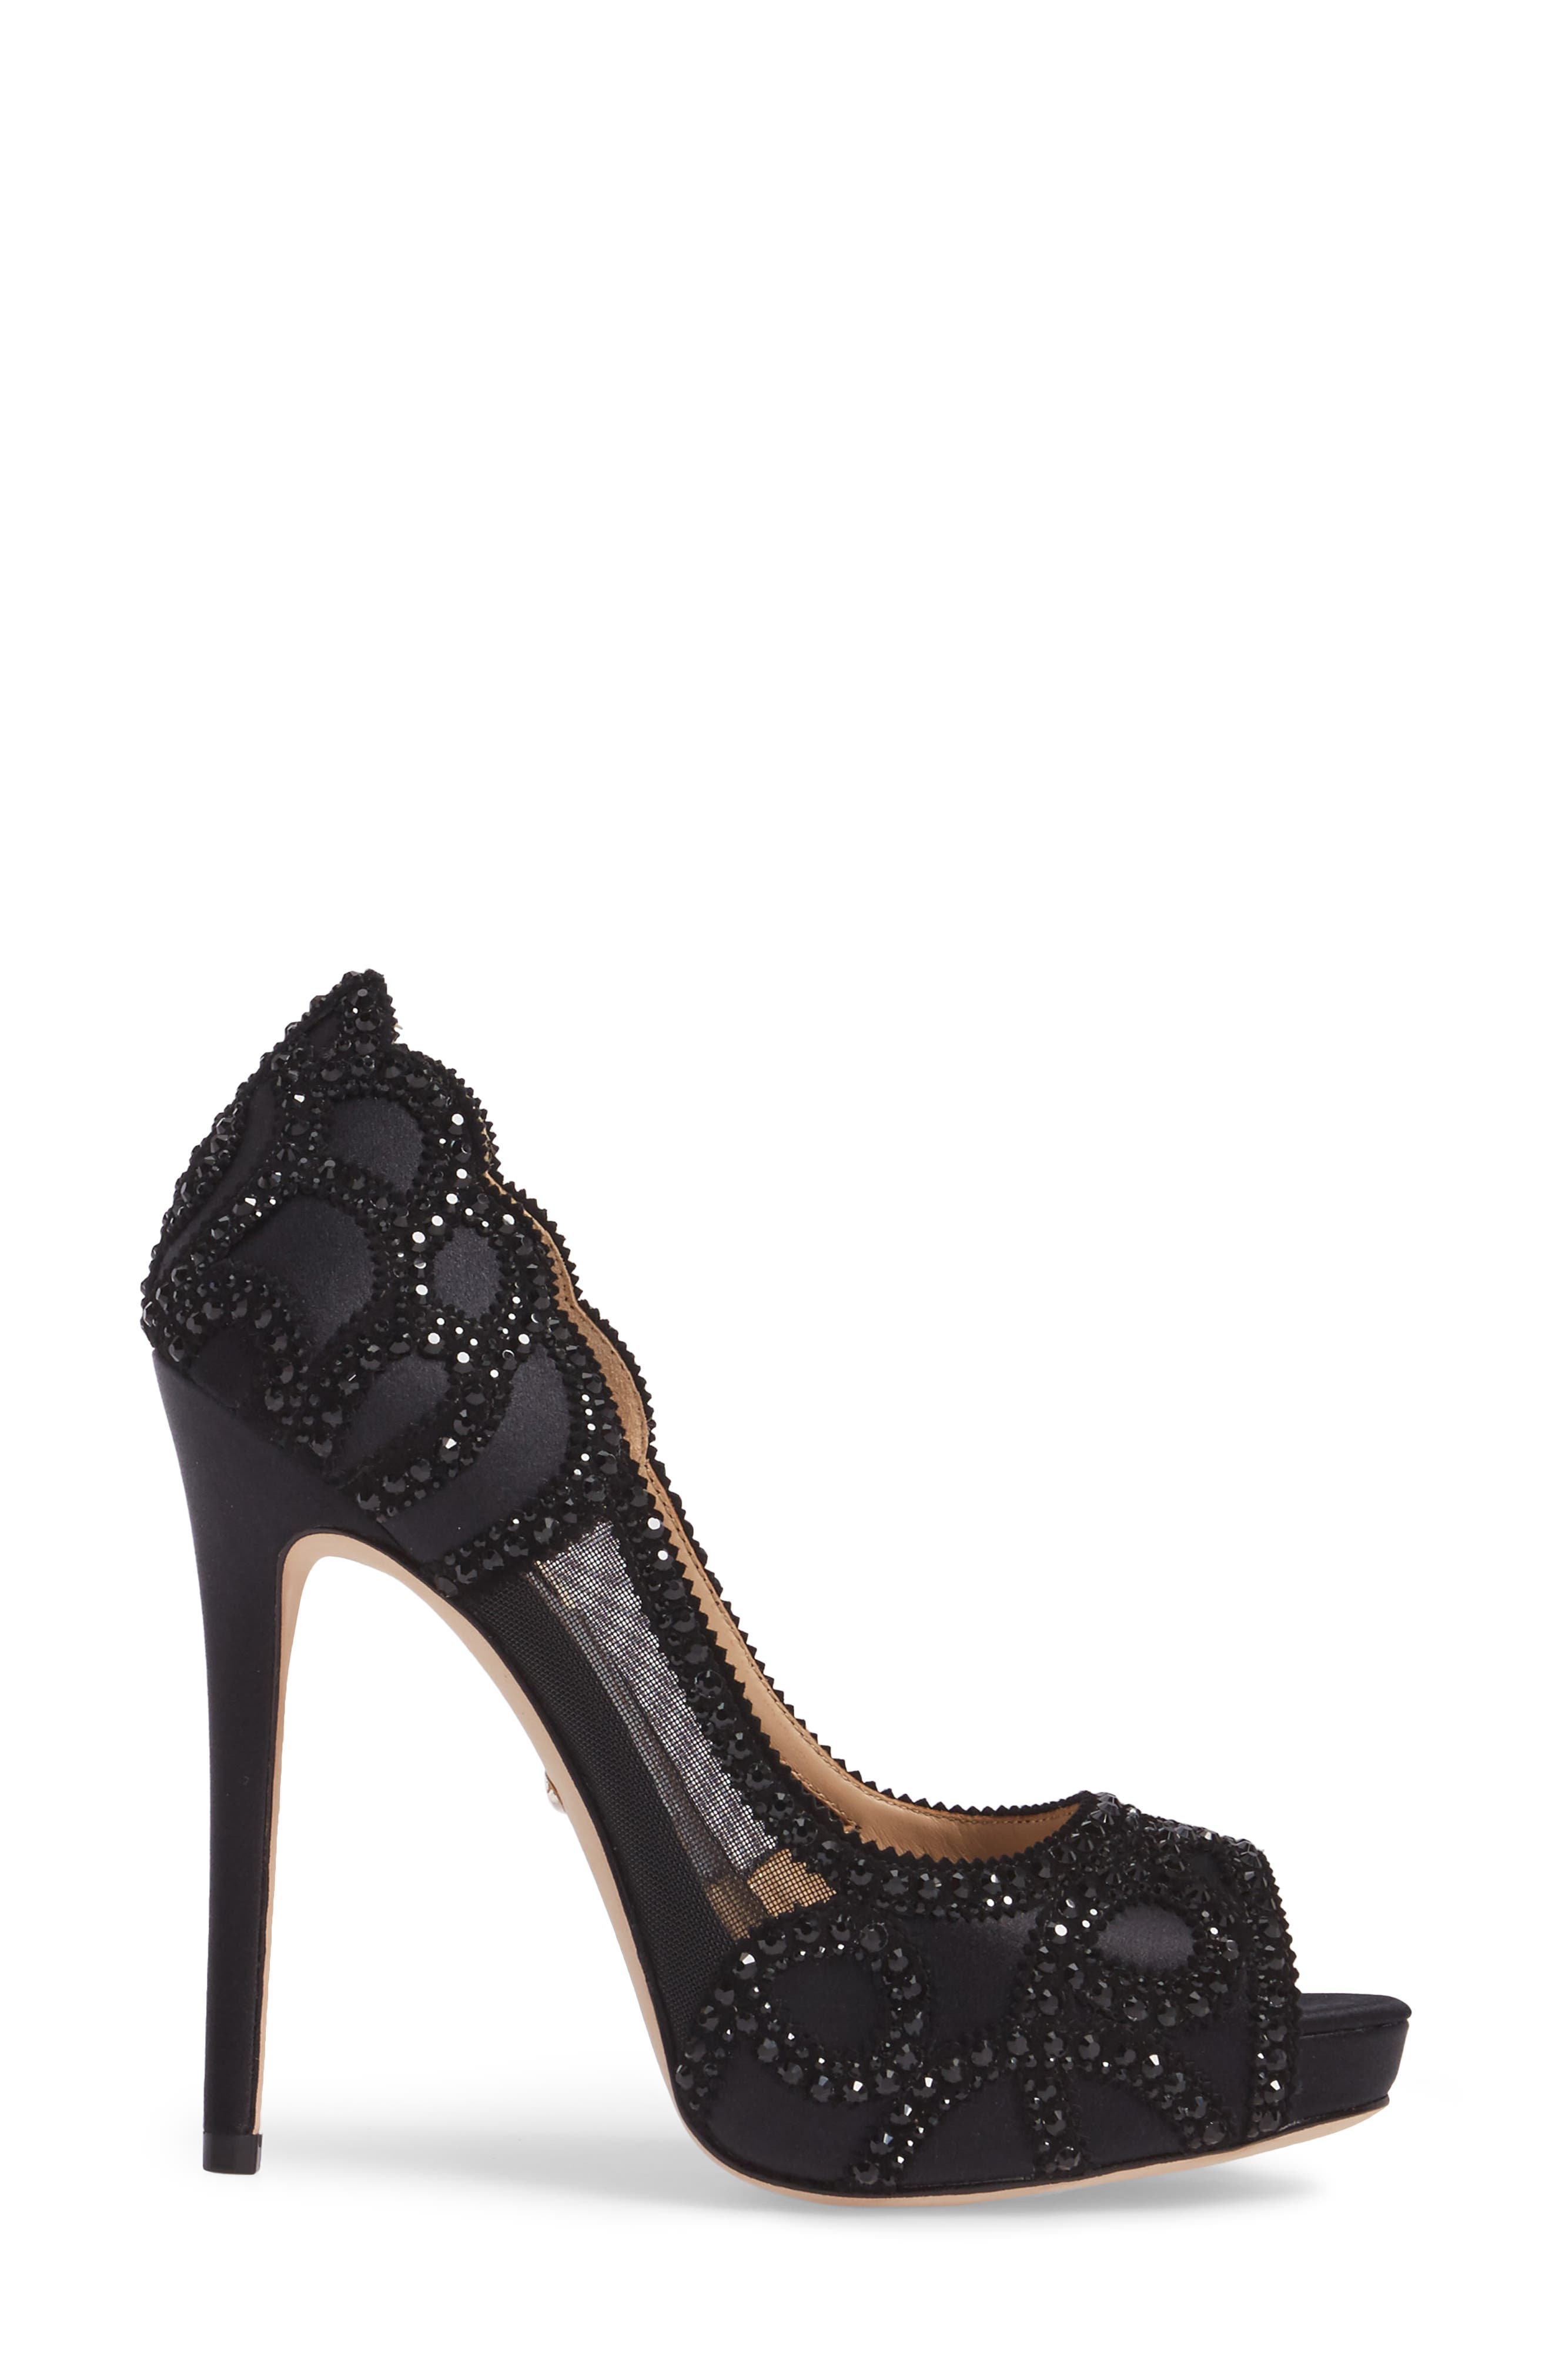 Witney Embellished Peep Toe Pump,                             Alternate thumbnail 3, color,                             Black Satin